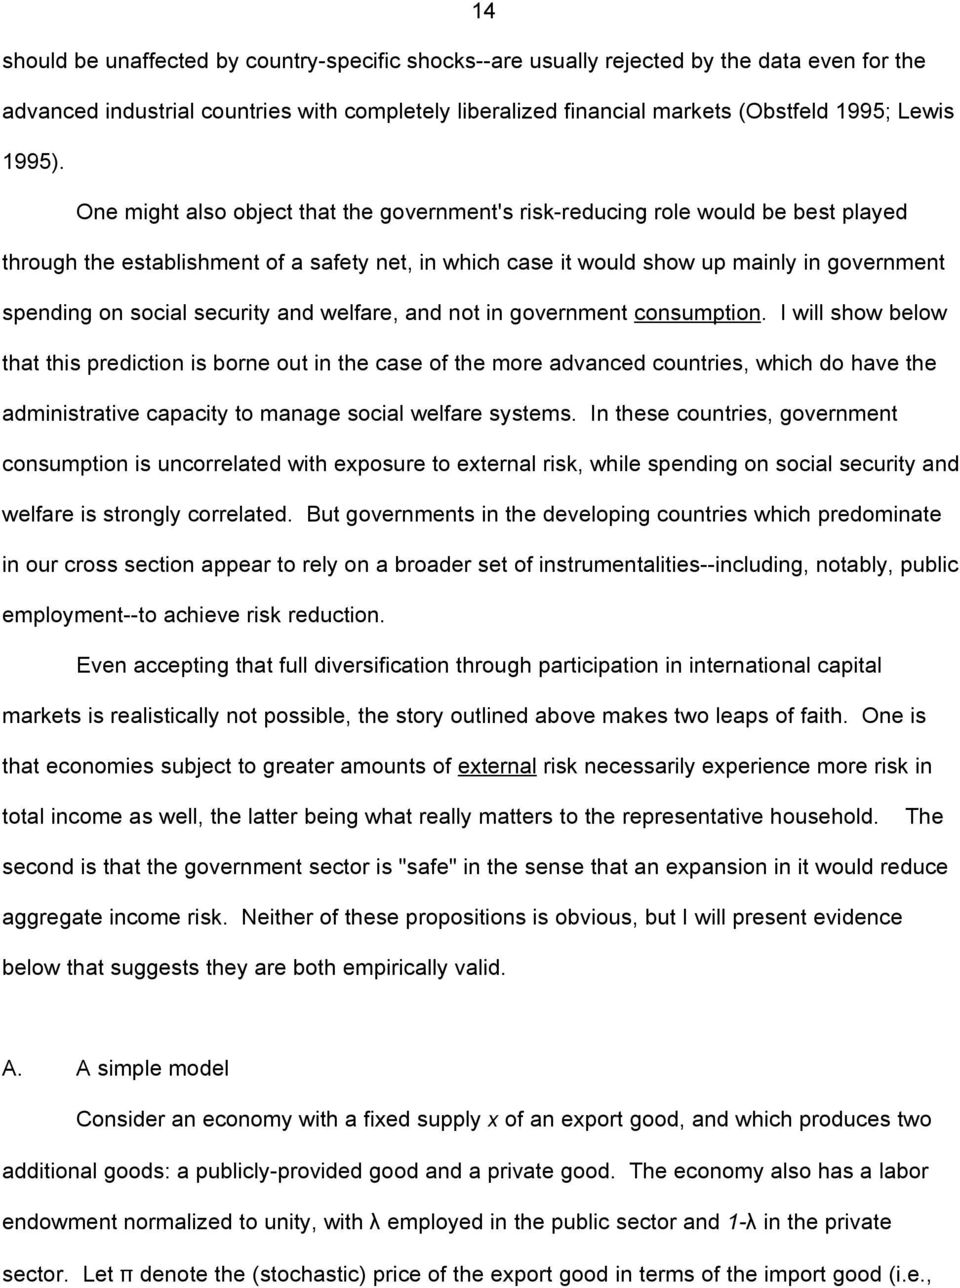 One might also object that the government's risk-reducing role would be best played through the establishment of a safety net, in which case it would show up mainly in government spending on social